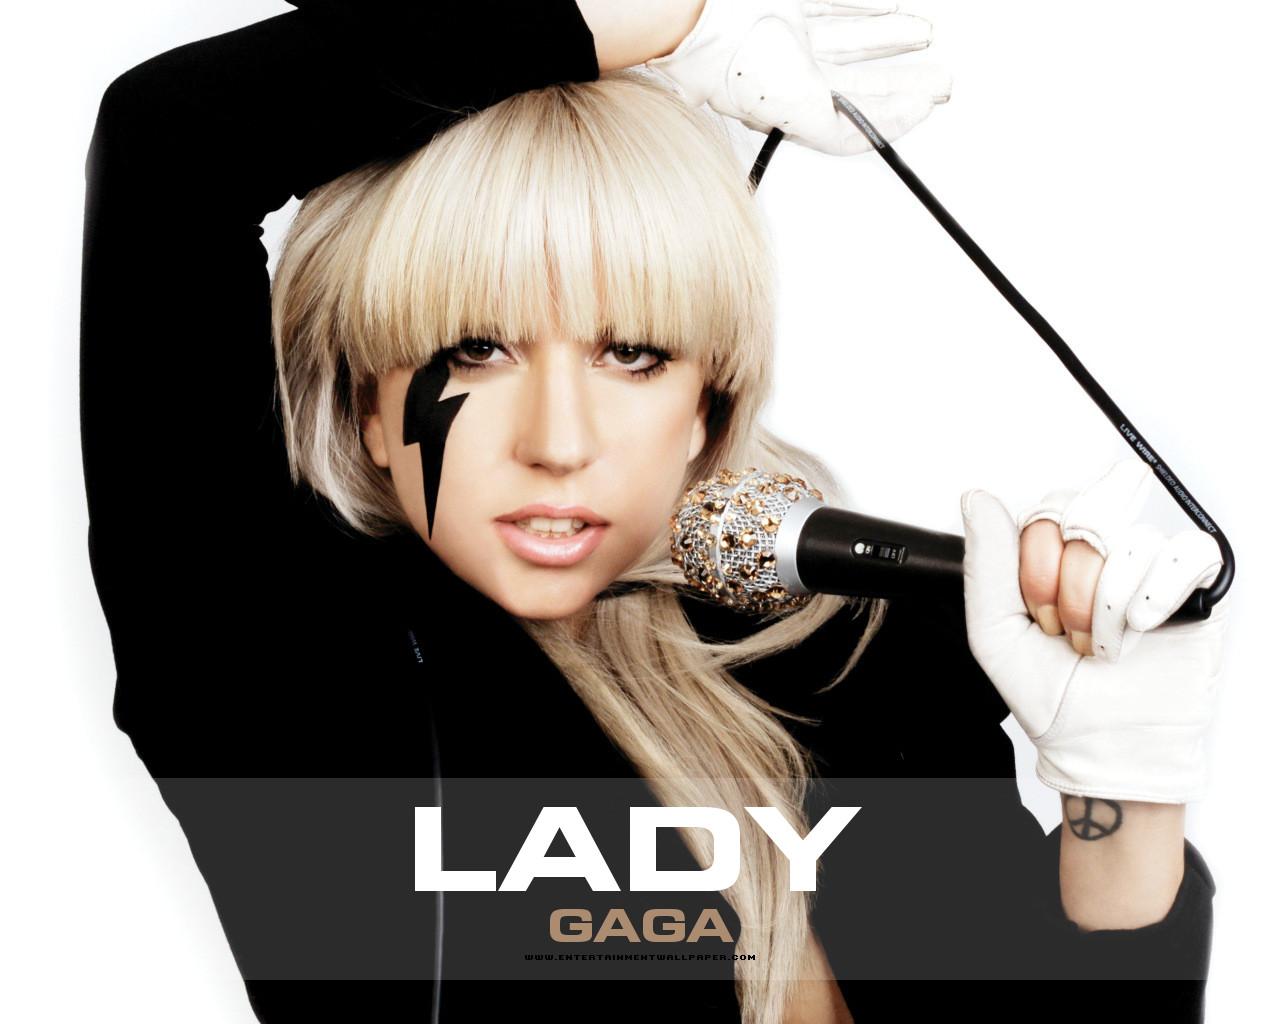 free games wallpapers lady gaga wallpapers download hot